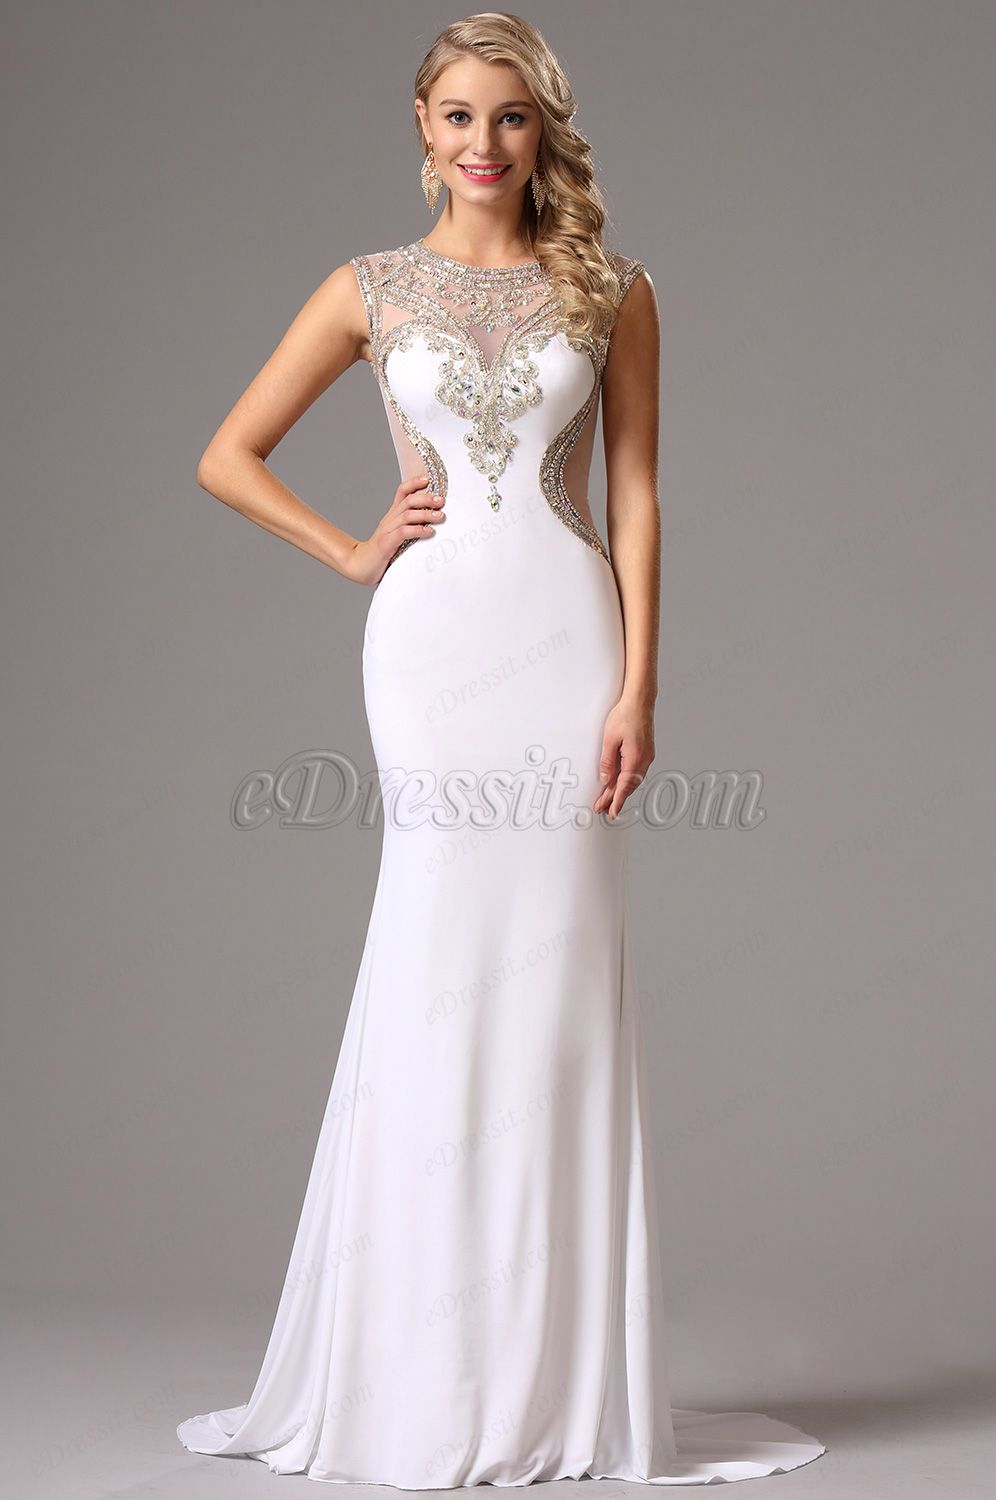 Beaded Sweetheart Neck White Prom Gown Formal Dress